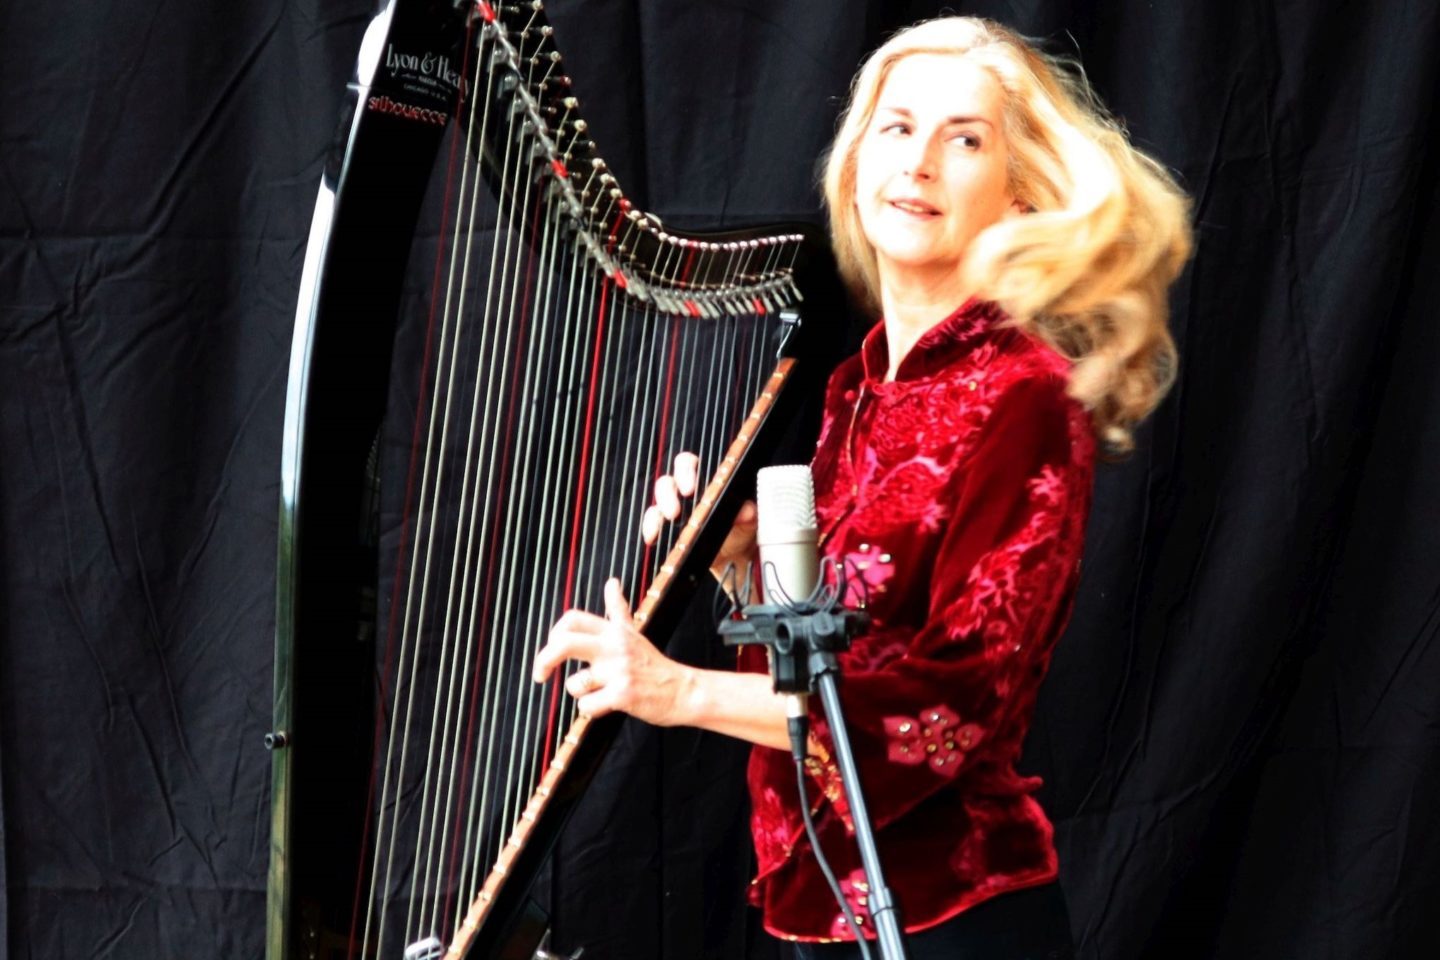 Harp concert with Sarah Deere-Jones